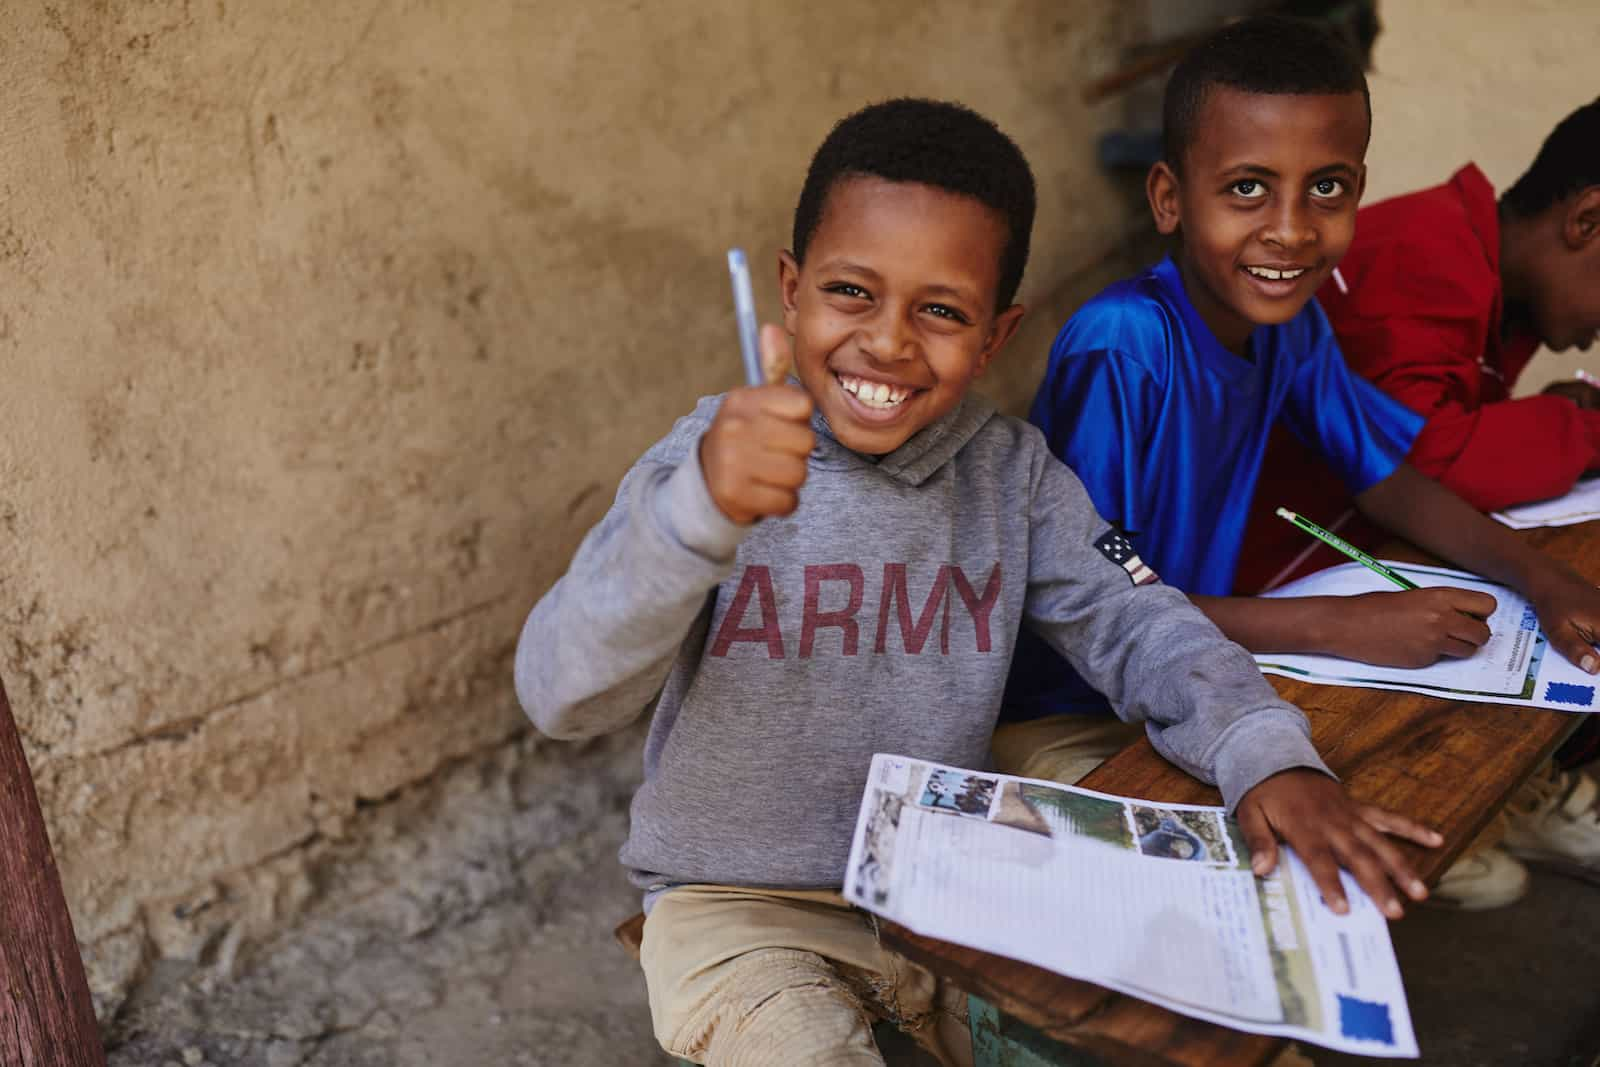 "A boy wearing a grey sweatshirt that says ""Army"" gives the thumbs up sign while holding a pen and paper."